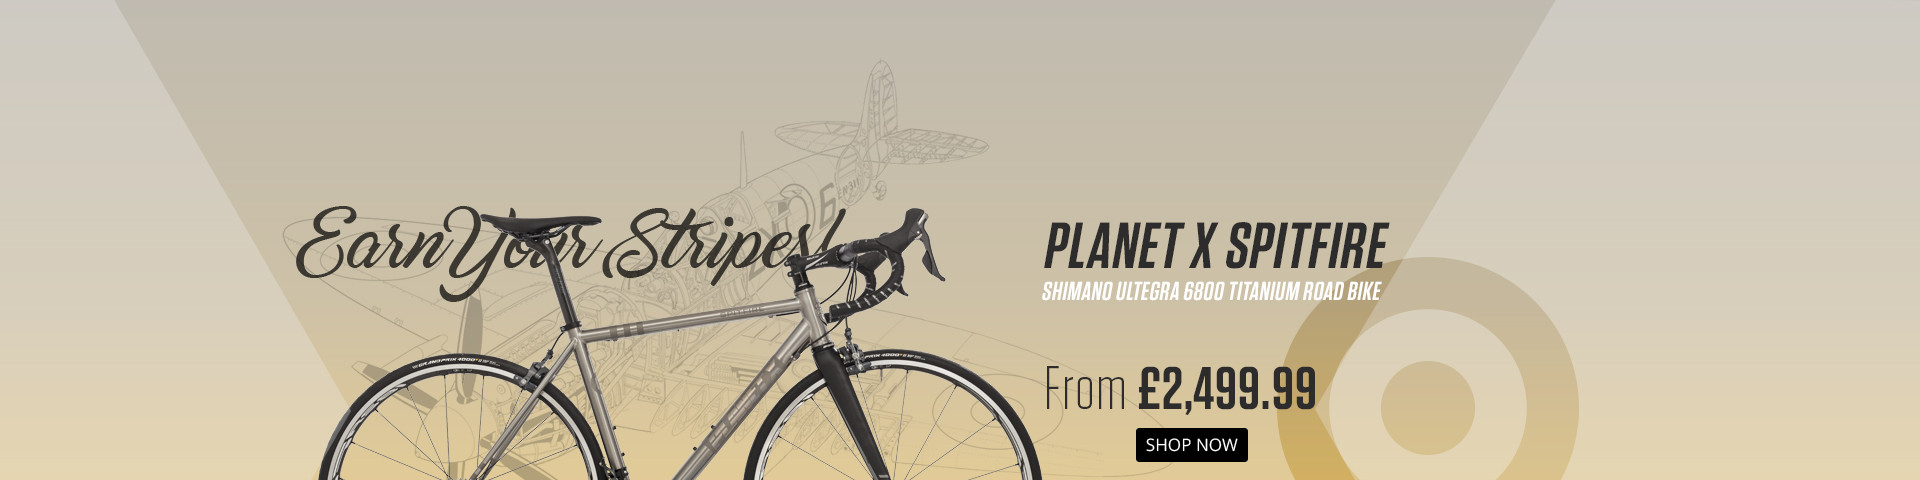 Introducing the New Planet X Spitfire Titanium Road Bike